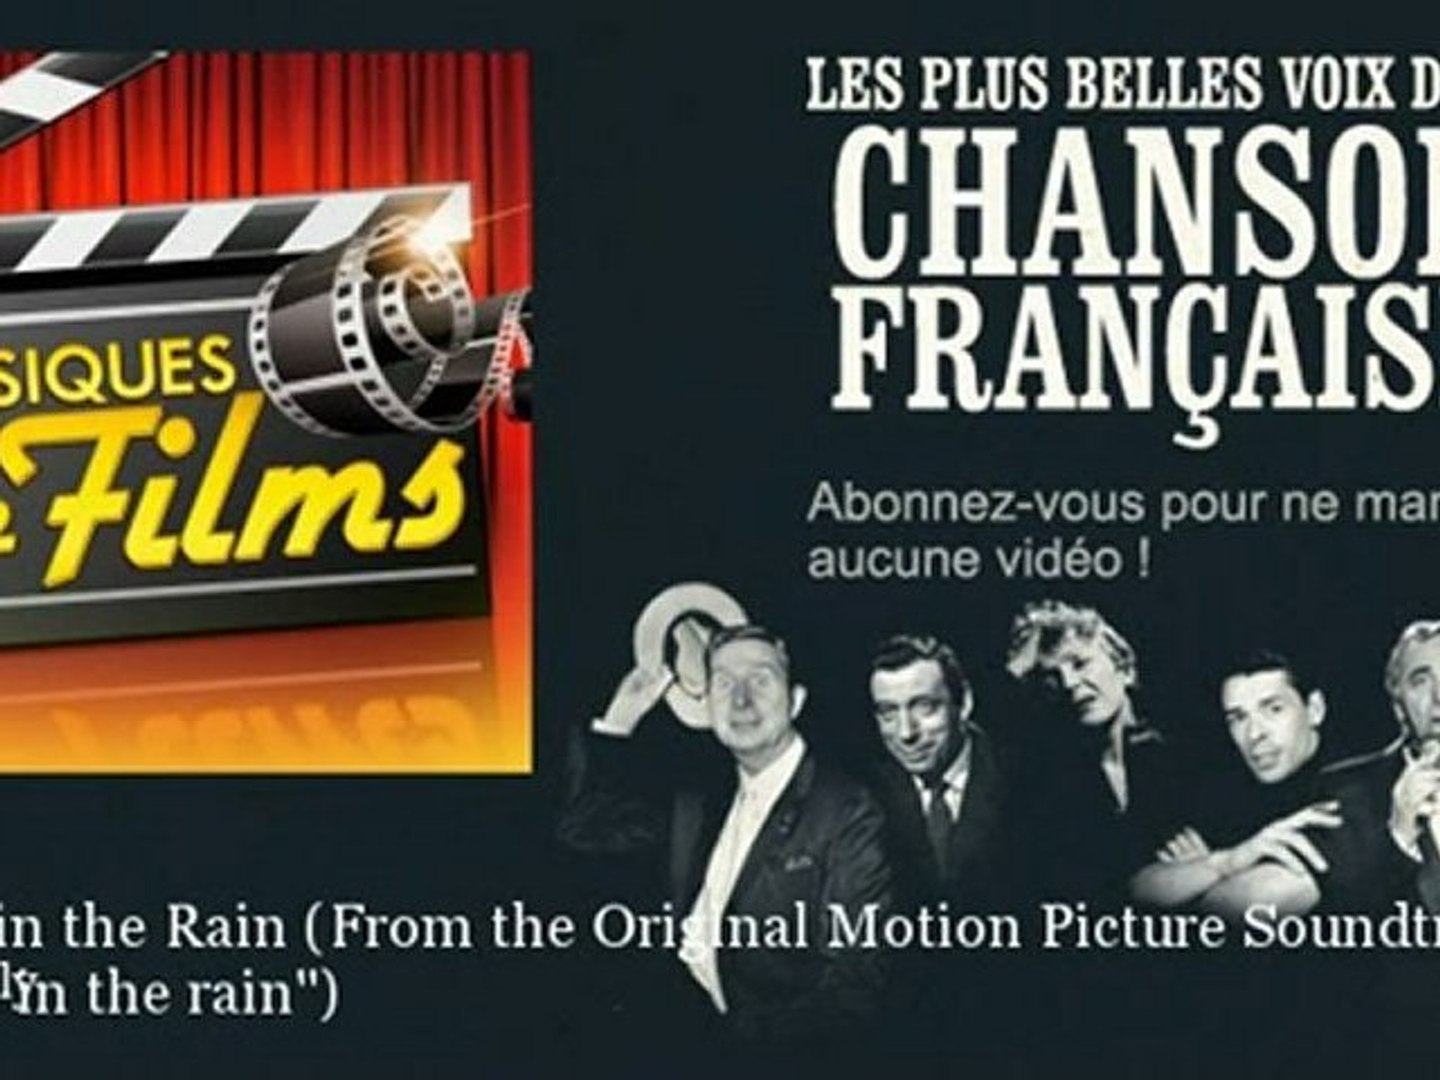 Gene Kelly - Singin in the Rain - From the Original Motion Picture Soundtrack